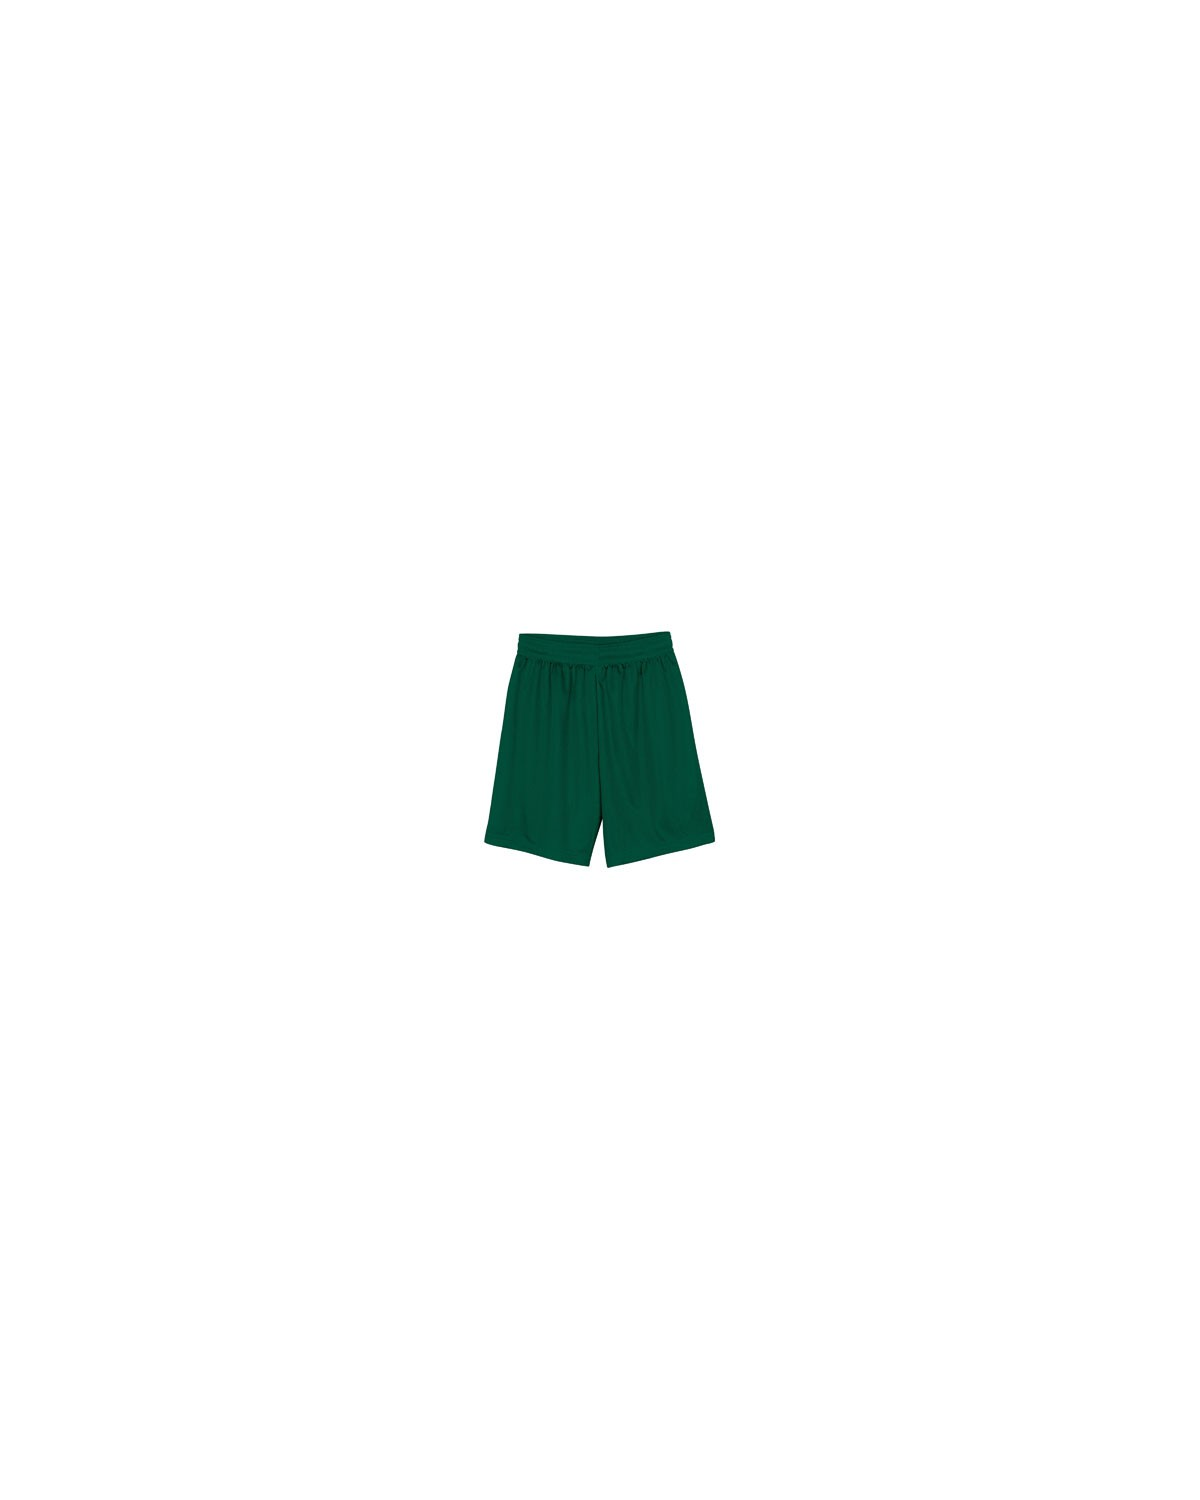 N5255 A4 Drop Ship FOREST GREEN